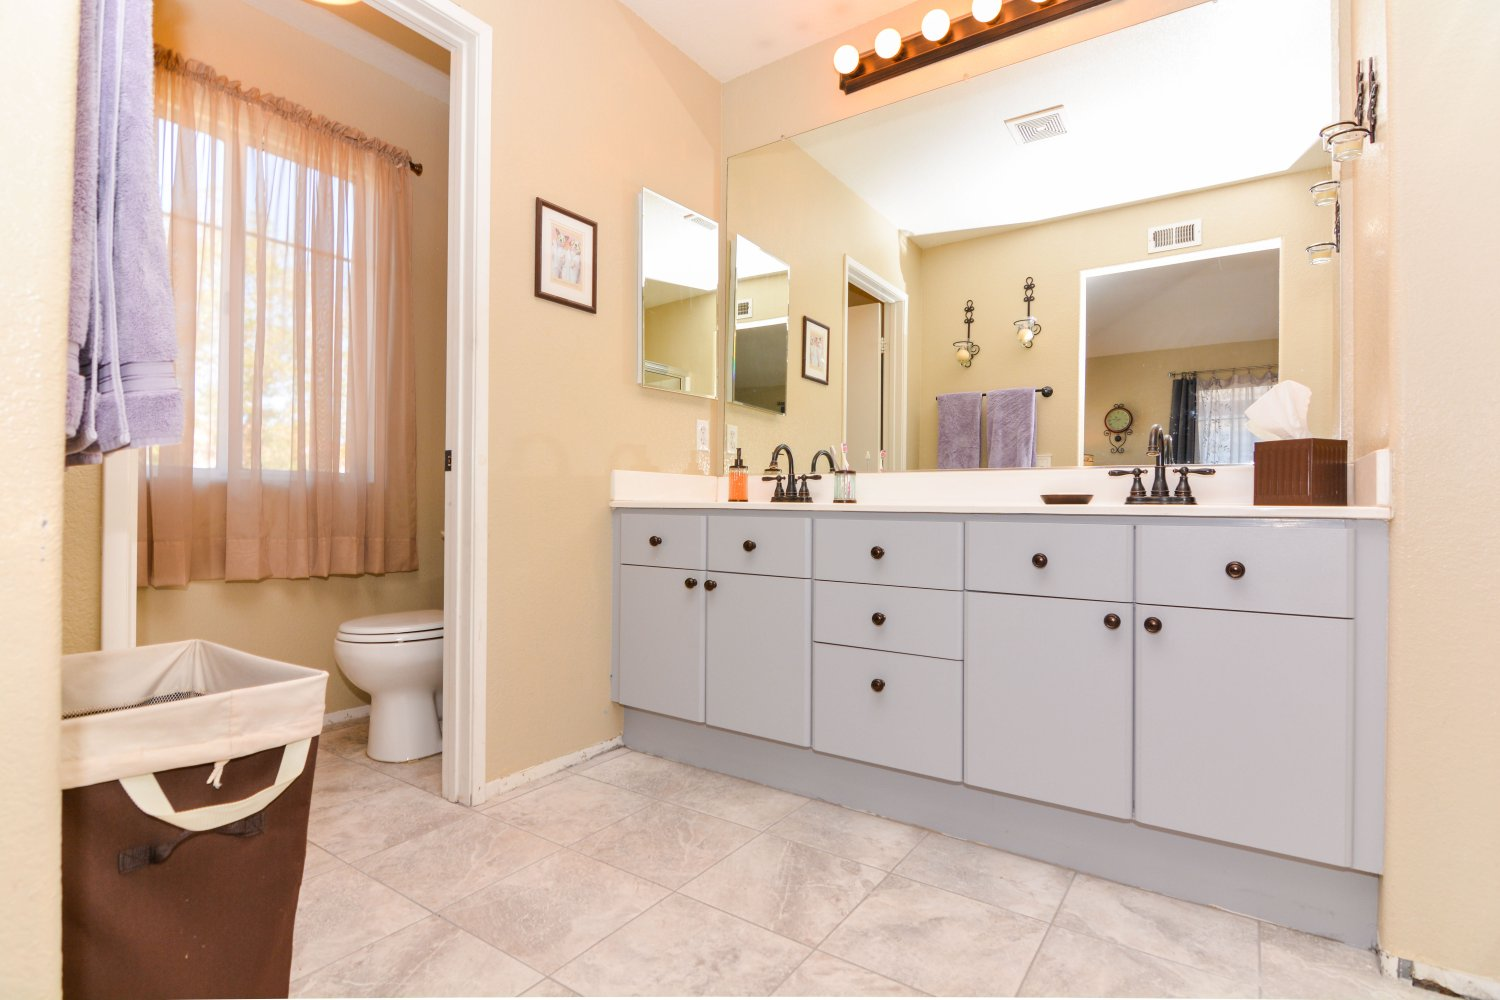 30335 Marigold Cir | Photo 28